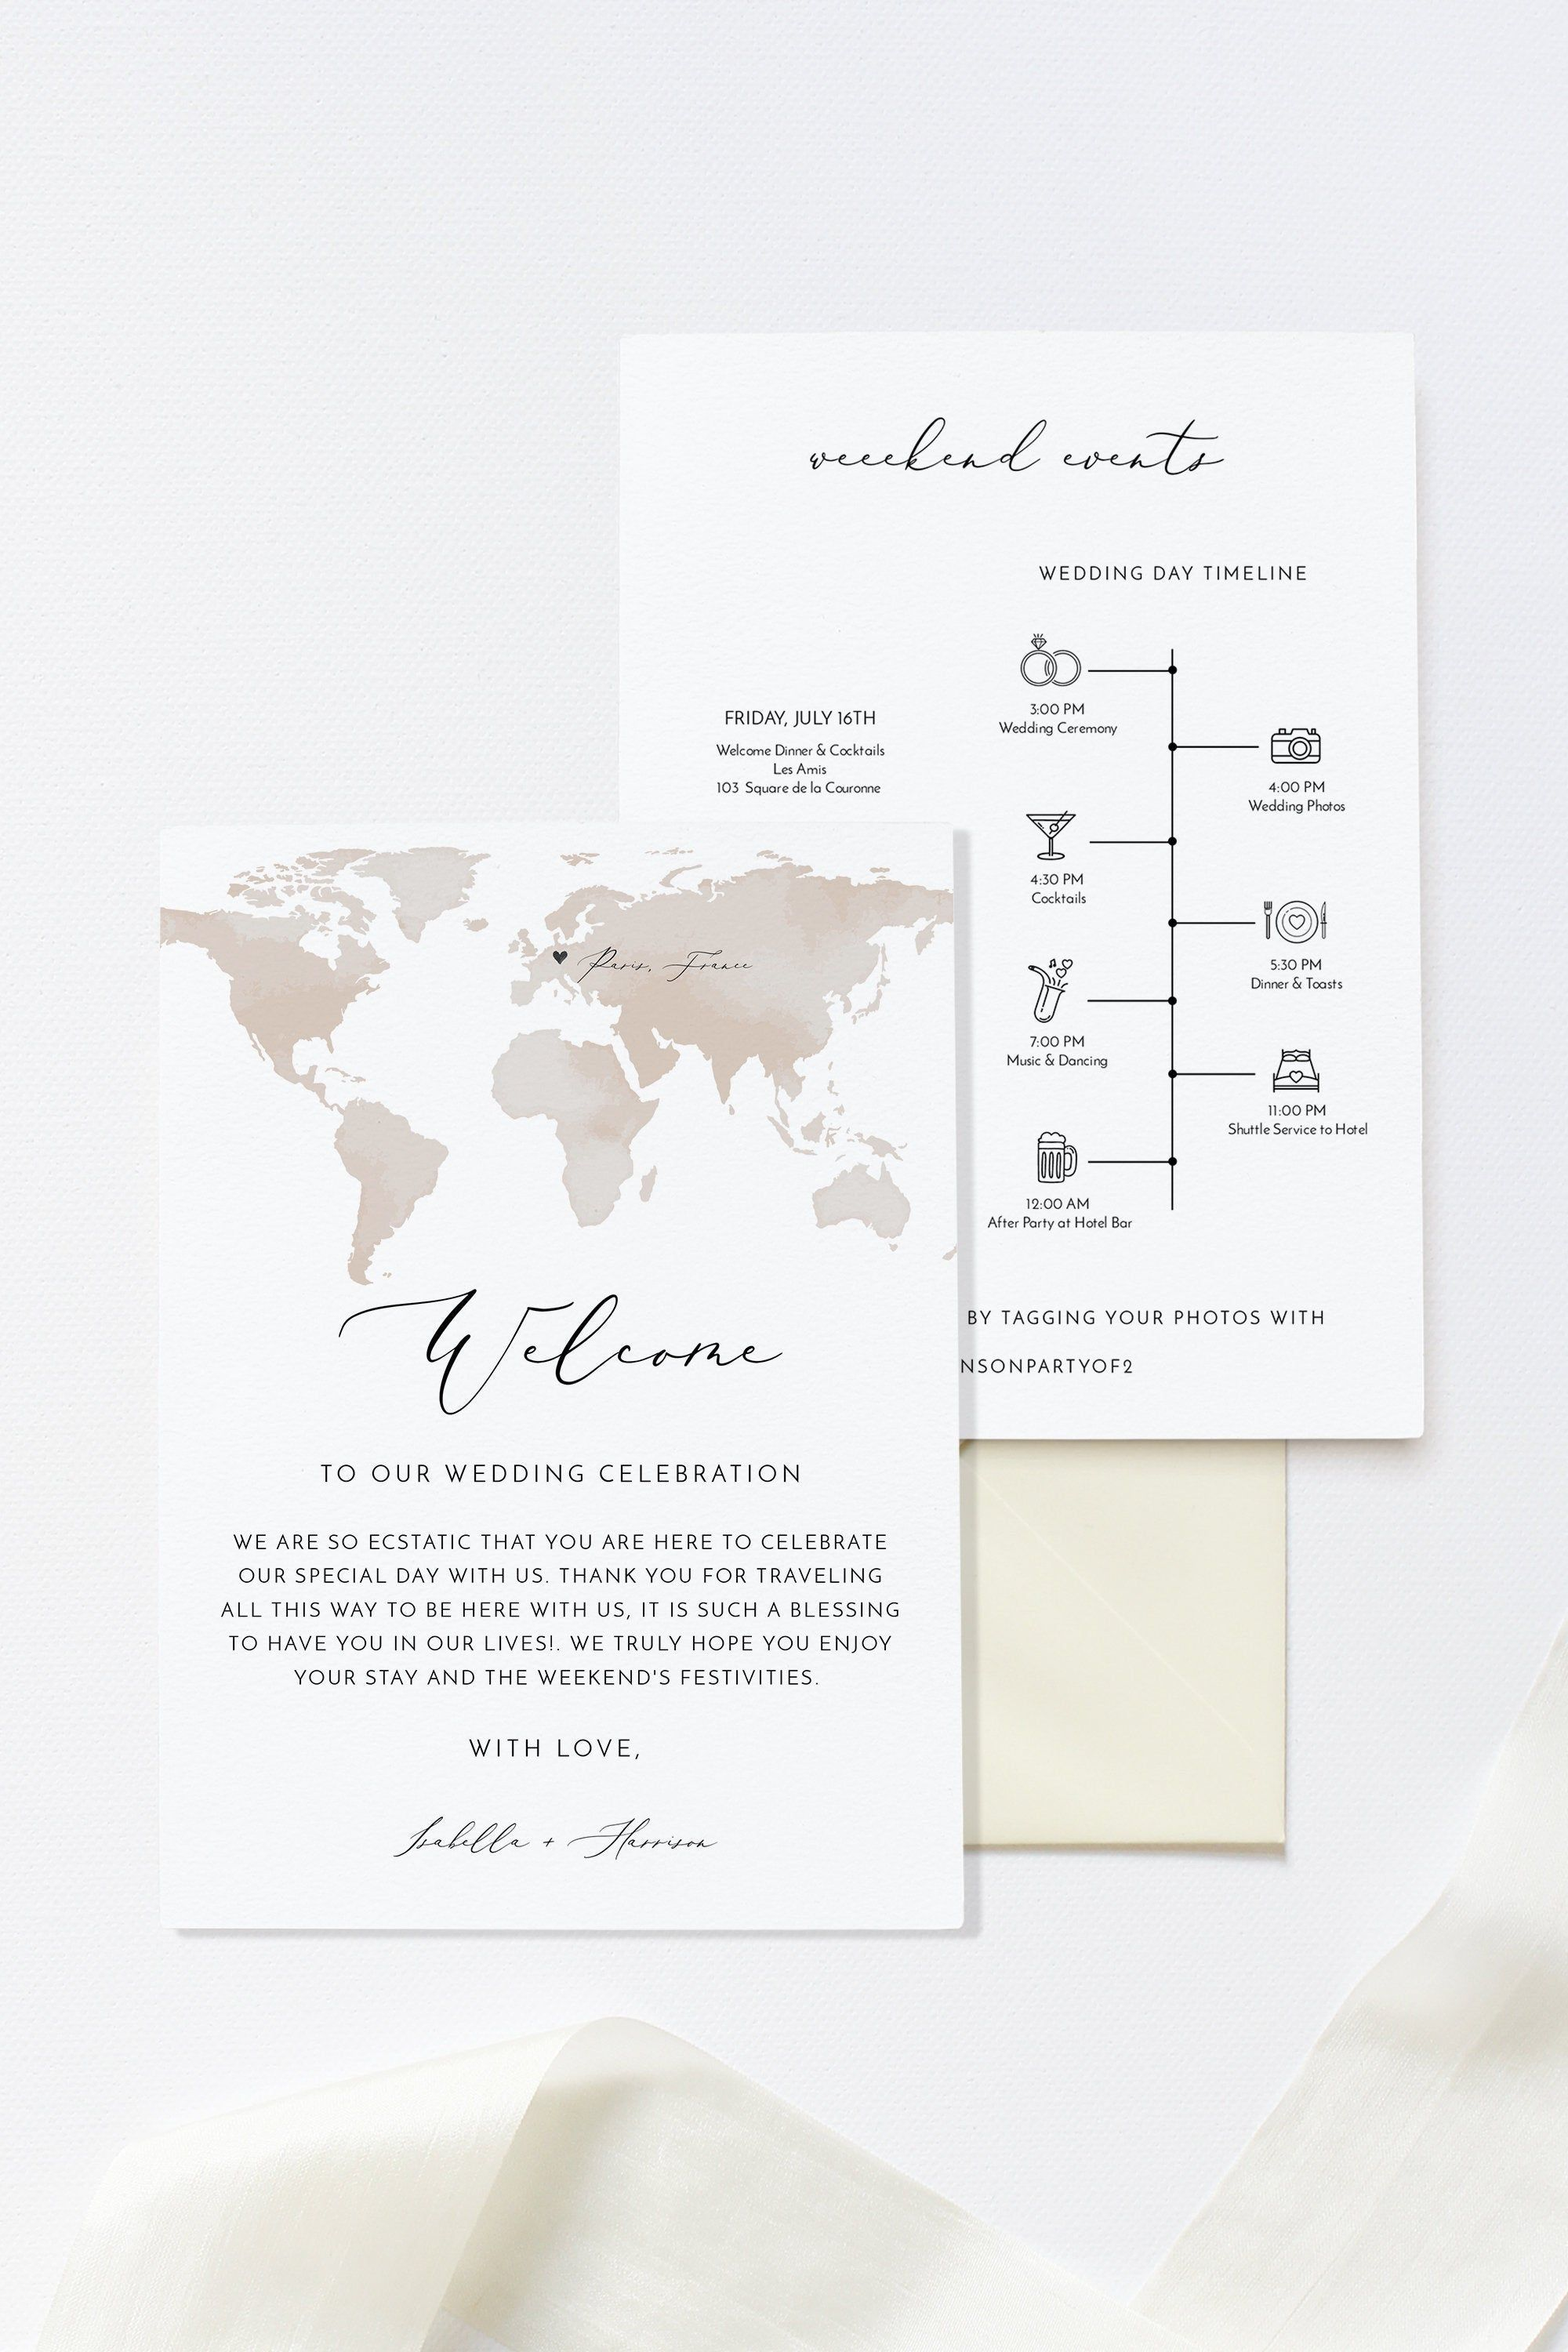 Carmen Destination Wedding Welcome Letter And Itinerary Etsy Wedding Welcome Letters Wedding Itinerary Template Welcome Letters